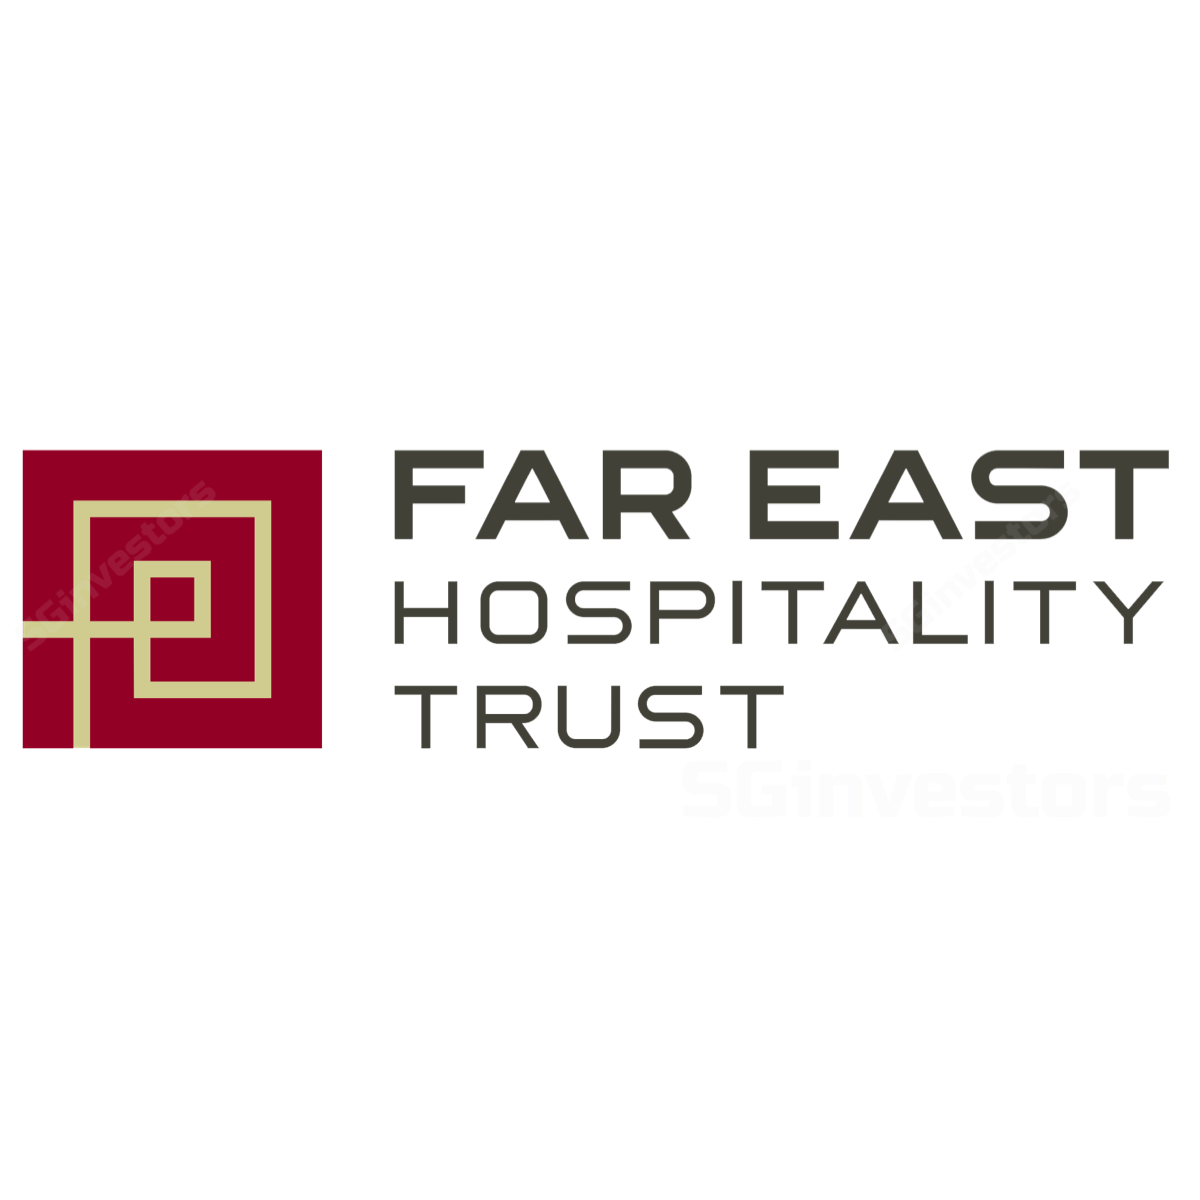 Far East Hospitality Trust - OCBC Investment Research 2018-08-01: So Far So Good